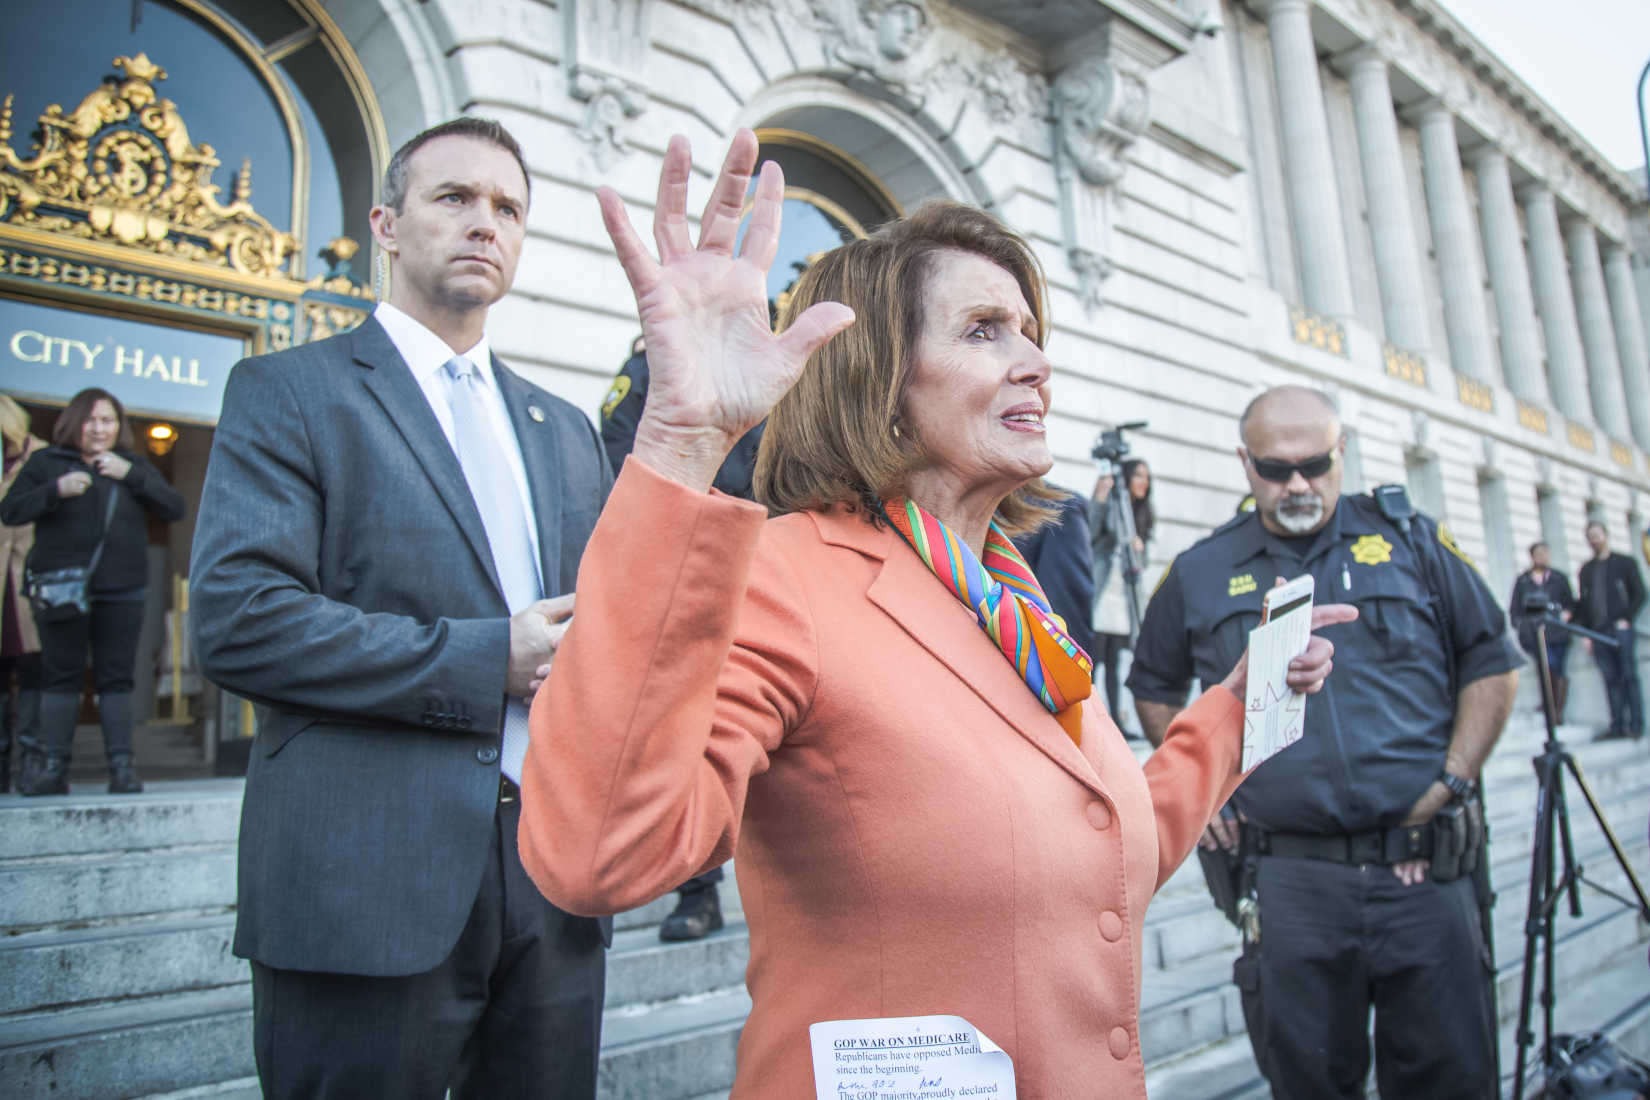 These Republicans Are Joining Forces with Pelosi to Promote a National Gun Registry